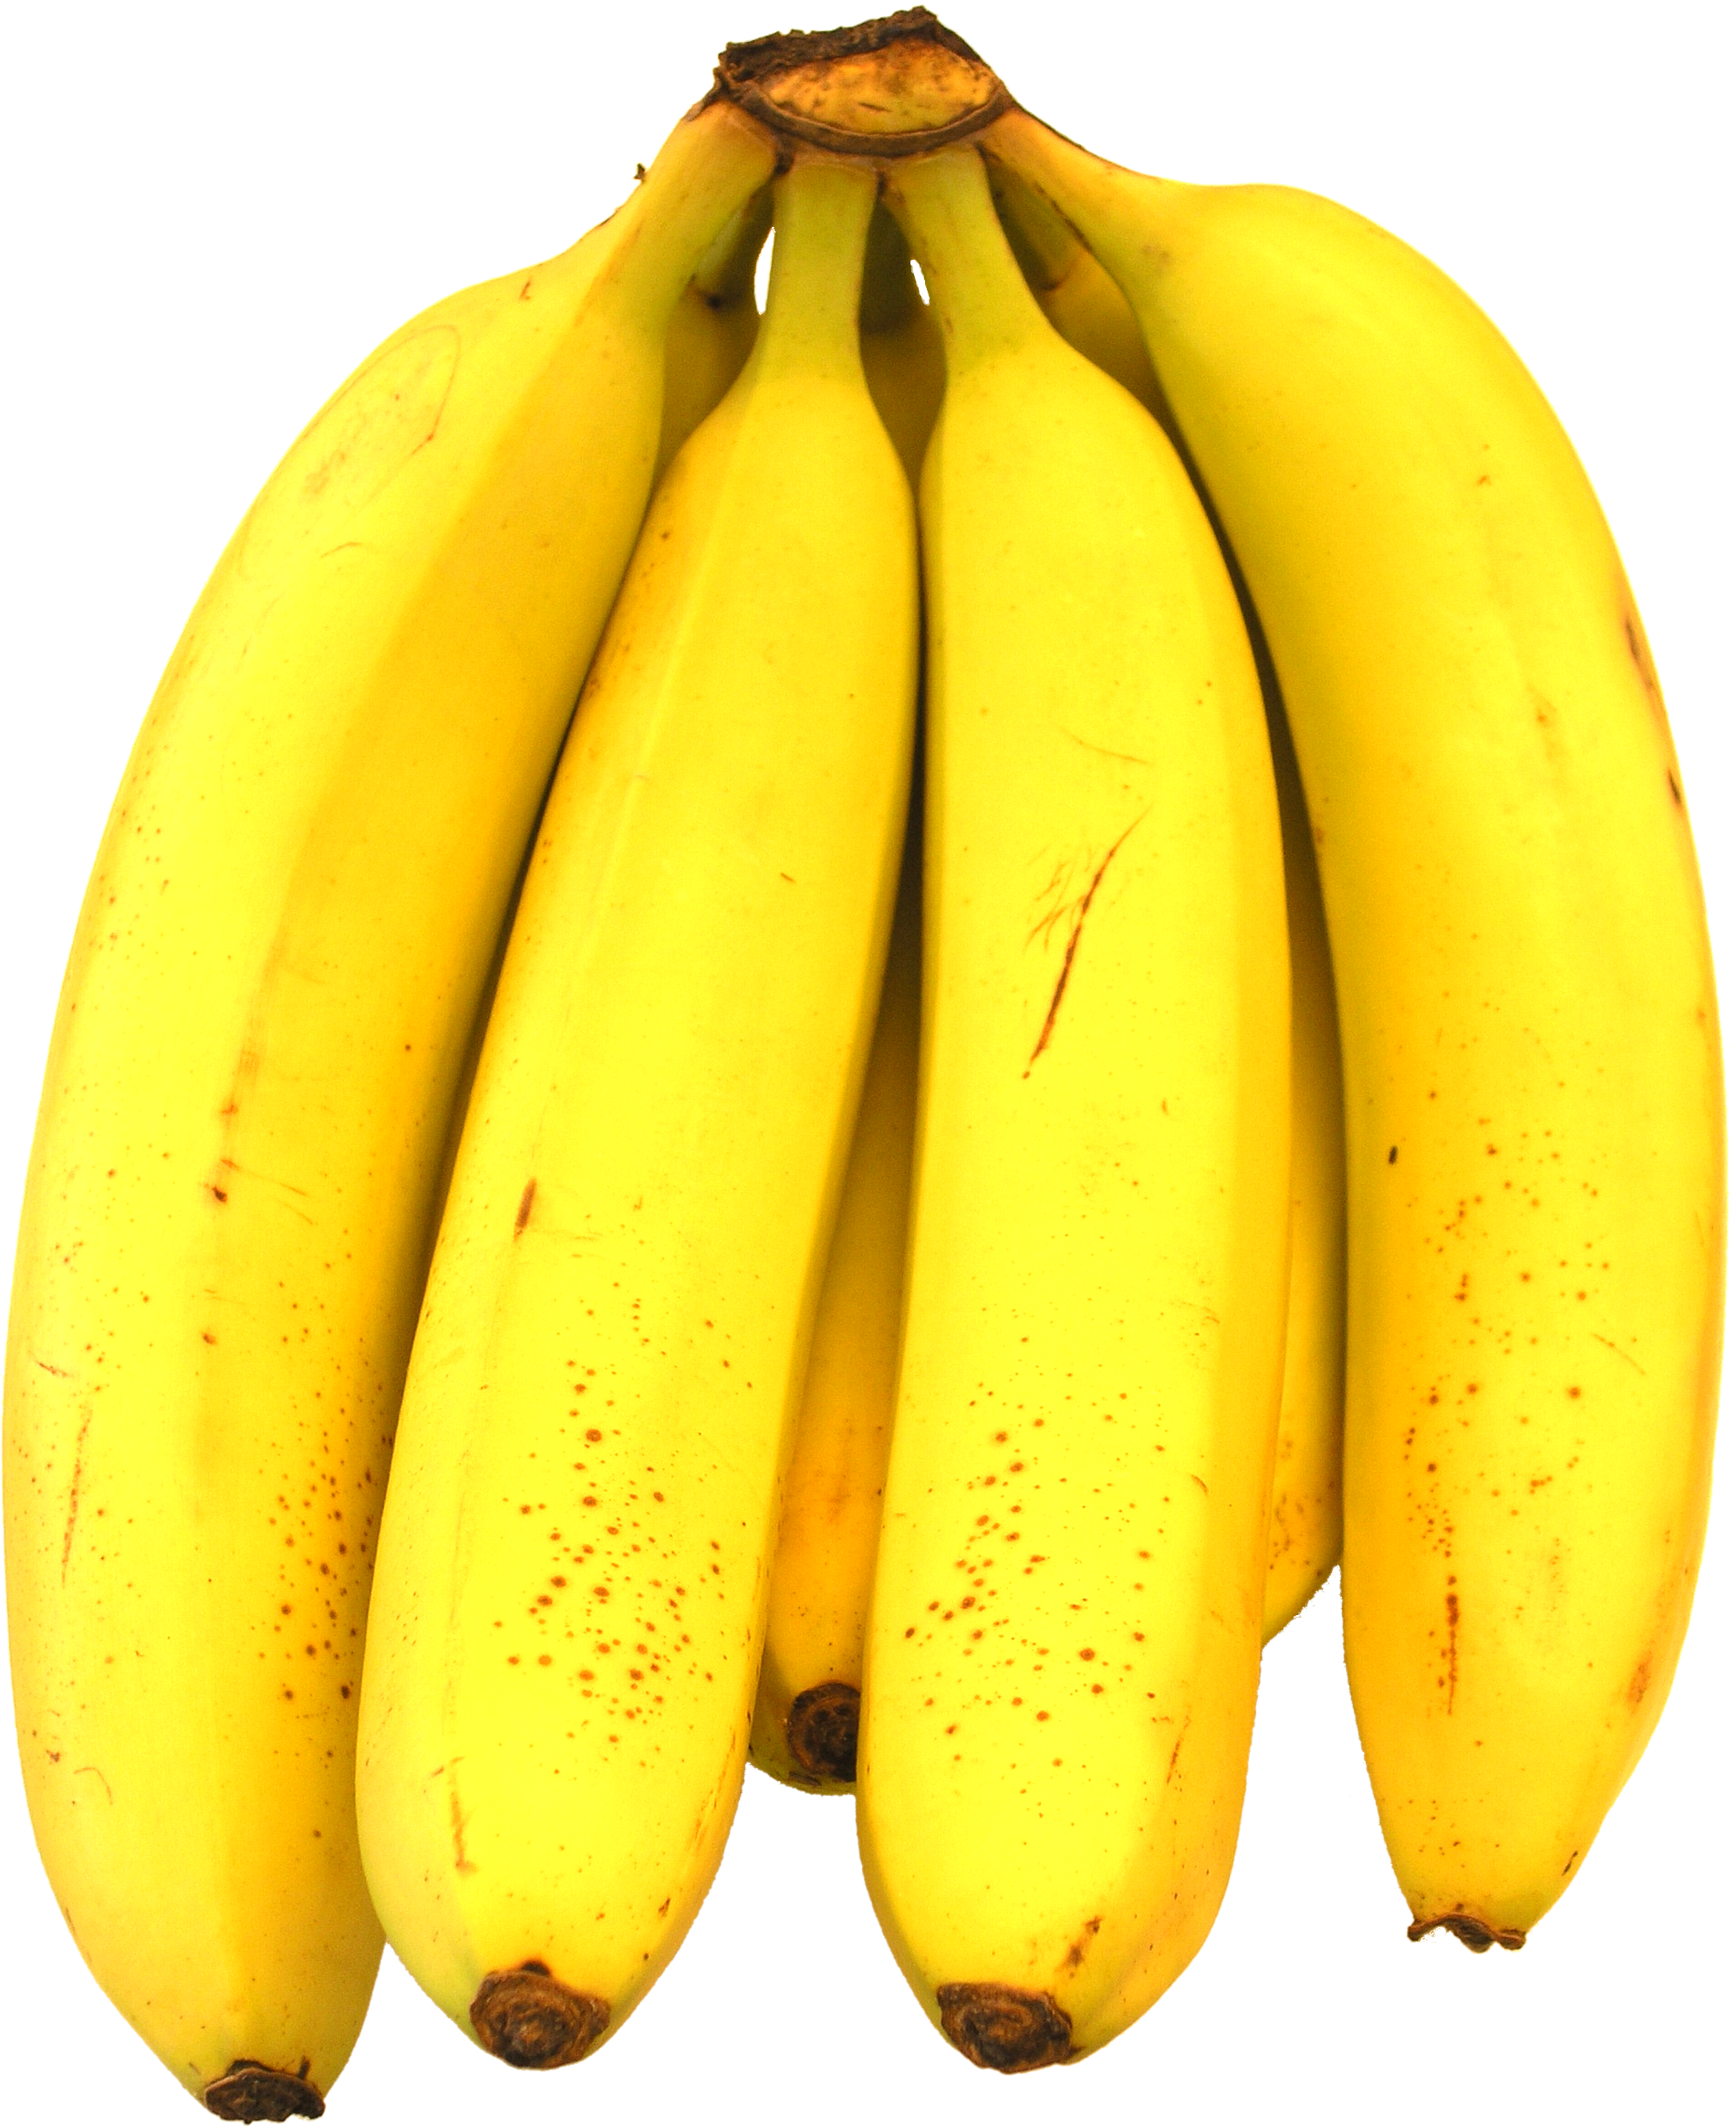 Download Banana Latest Version 2018 image #27760